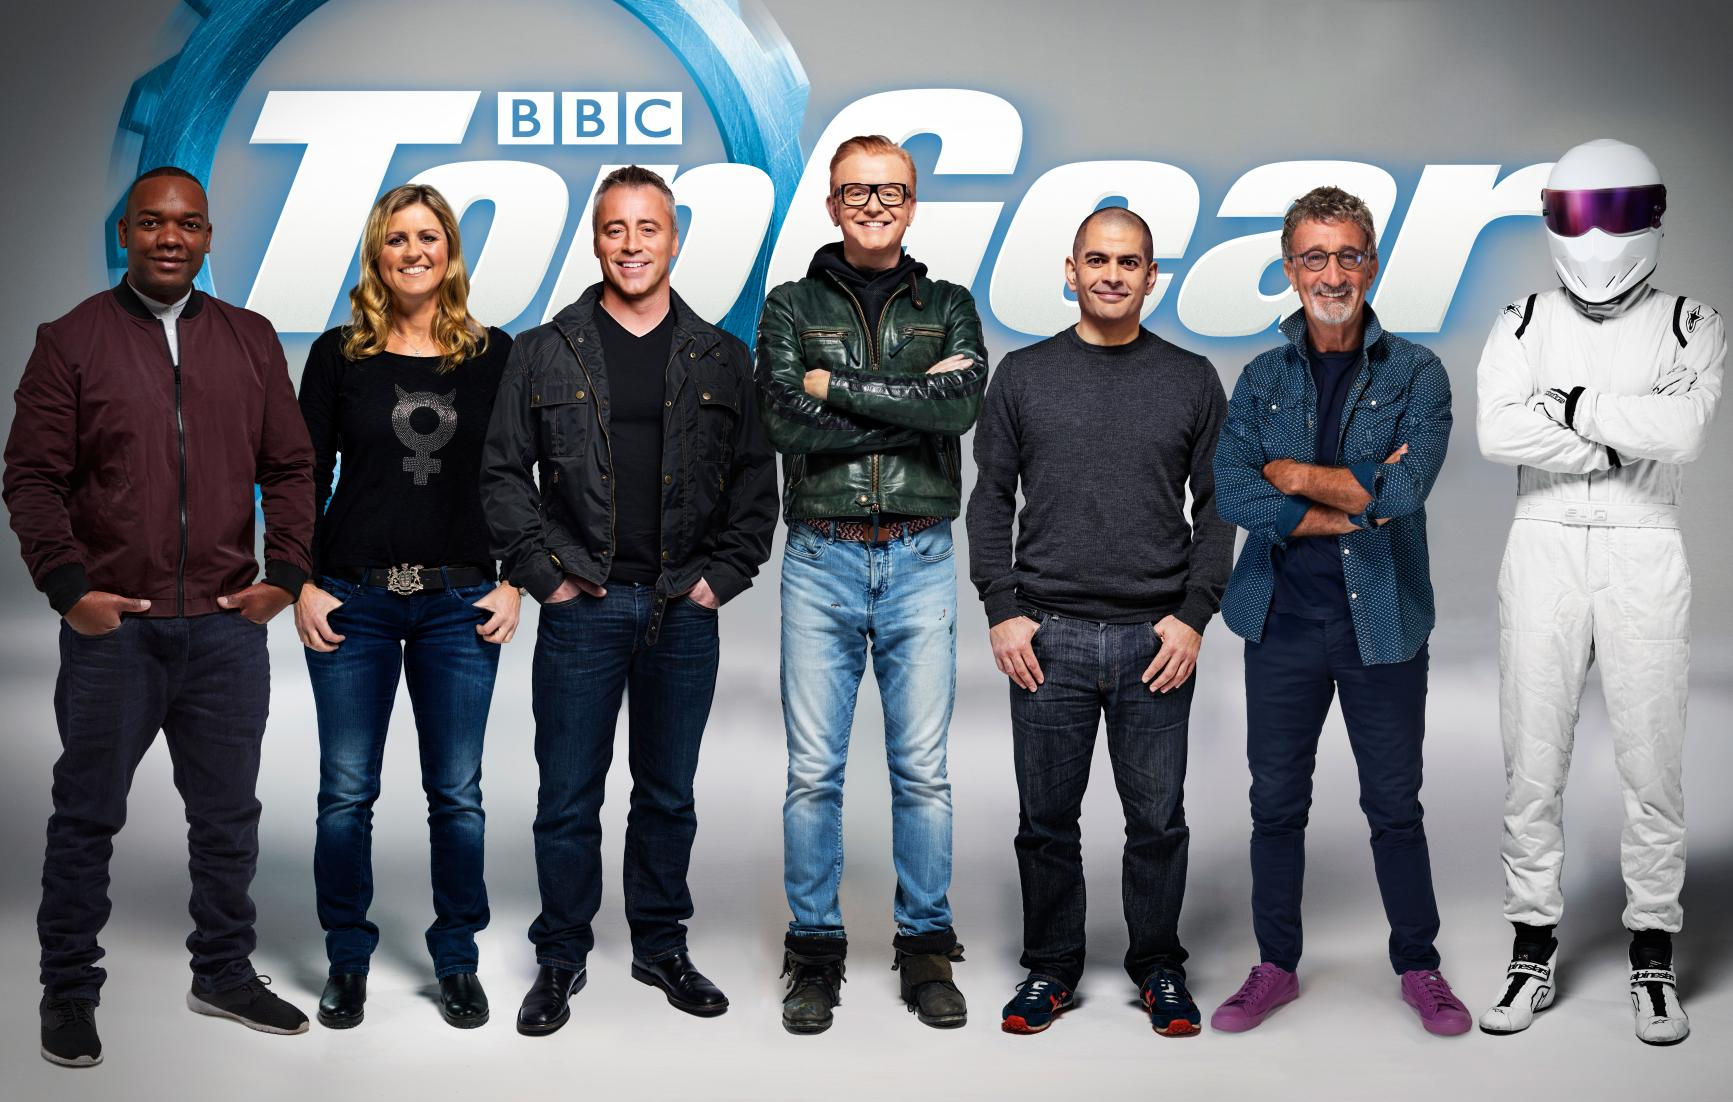 New Top Gear UK Line-up